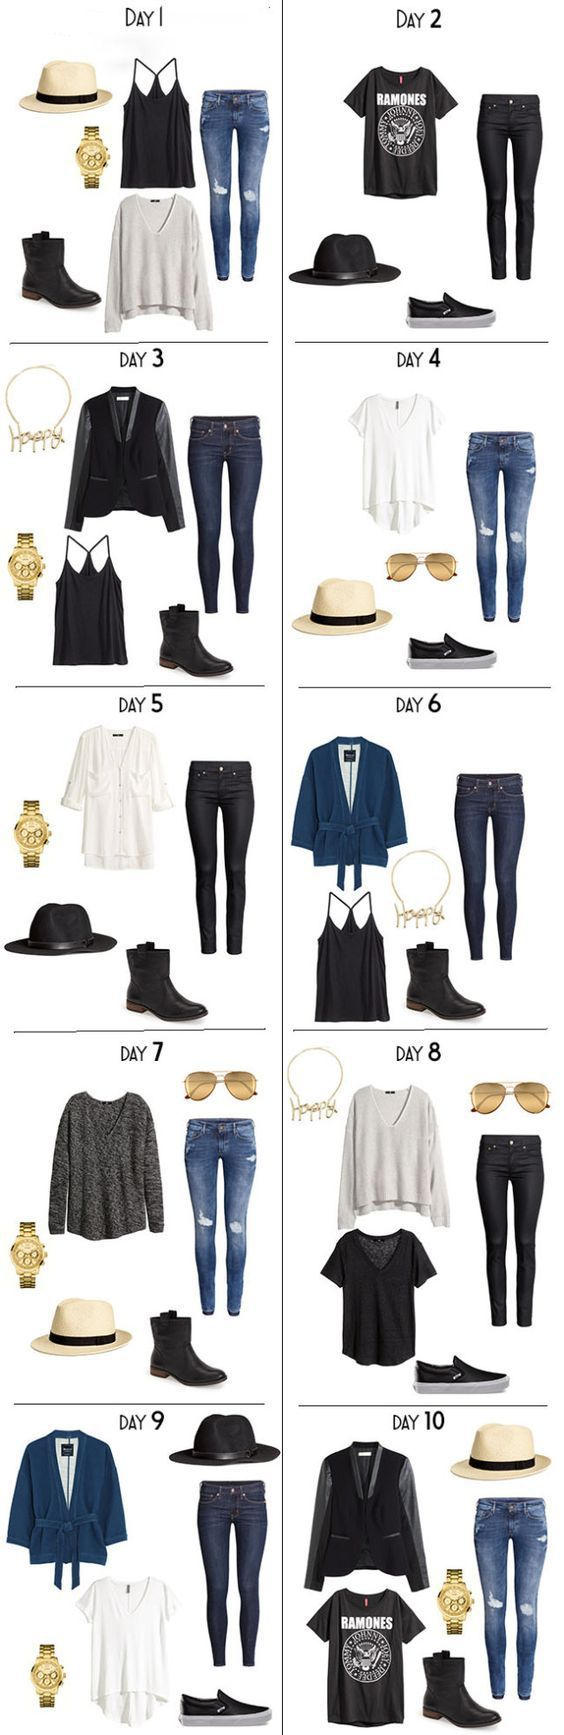 10 Days worth of outfits for a fall vacation packing list.